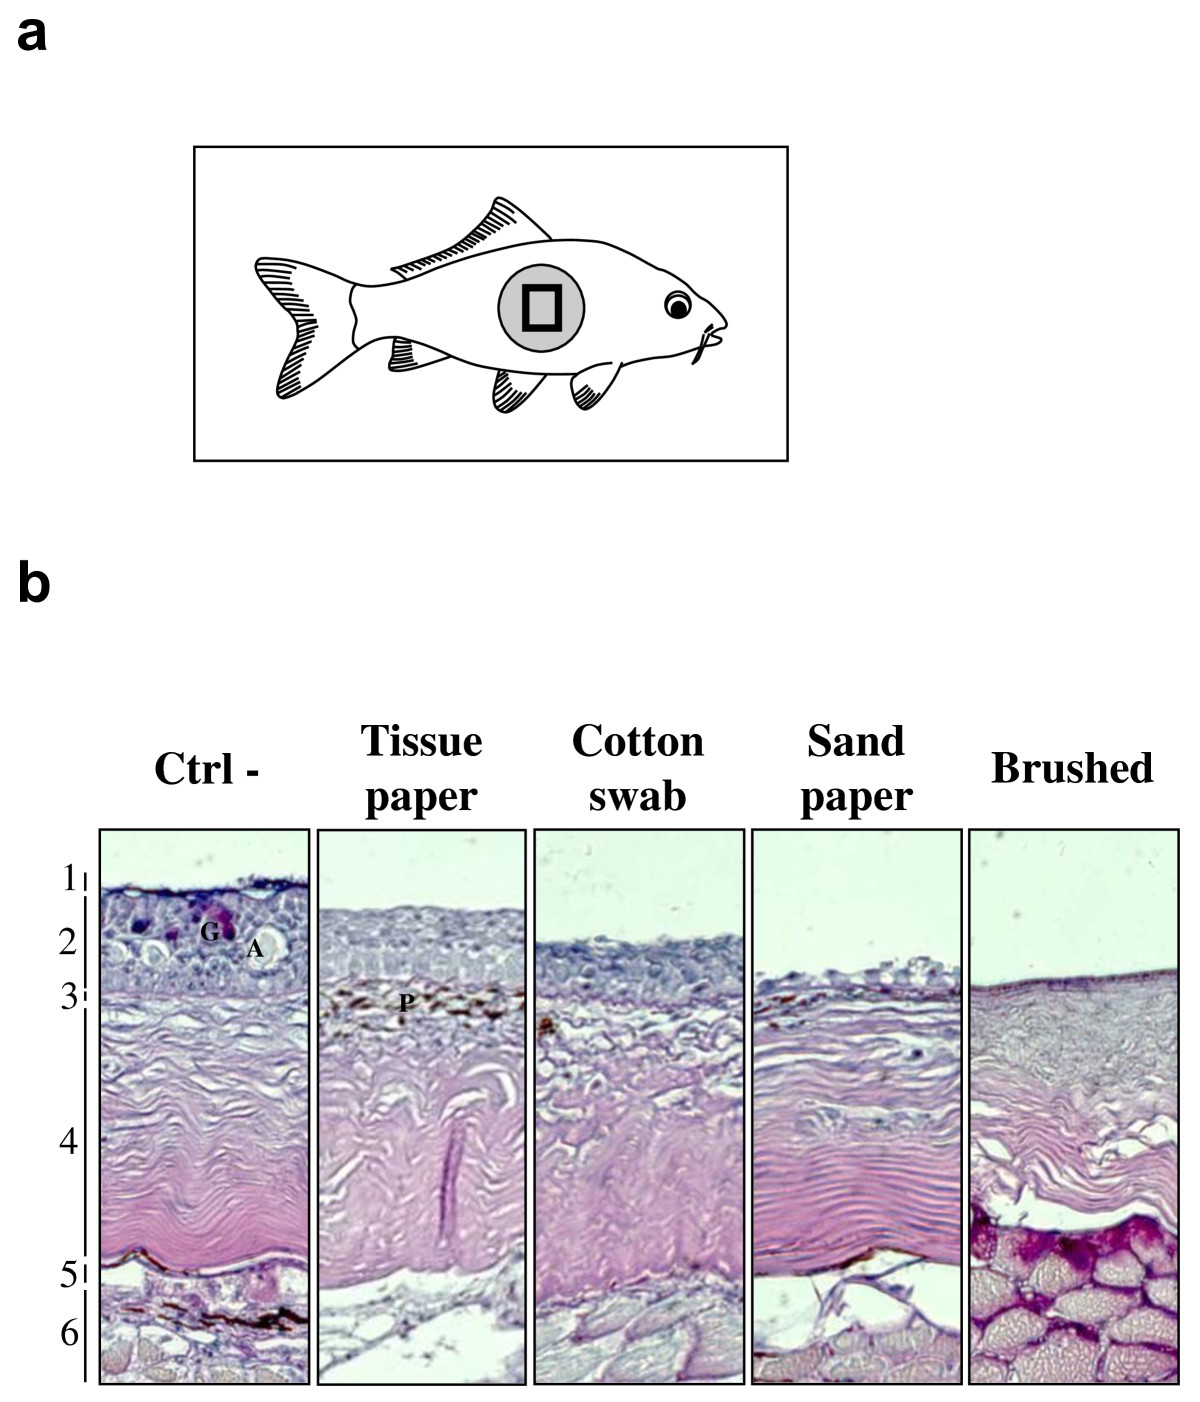 https://static-content.springer.com/image/art%3A10.1186%2F1297-9716-42-92/MediaObjects/13567_2011_Article_92_Fig1_HTML.jpg